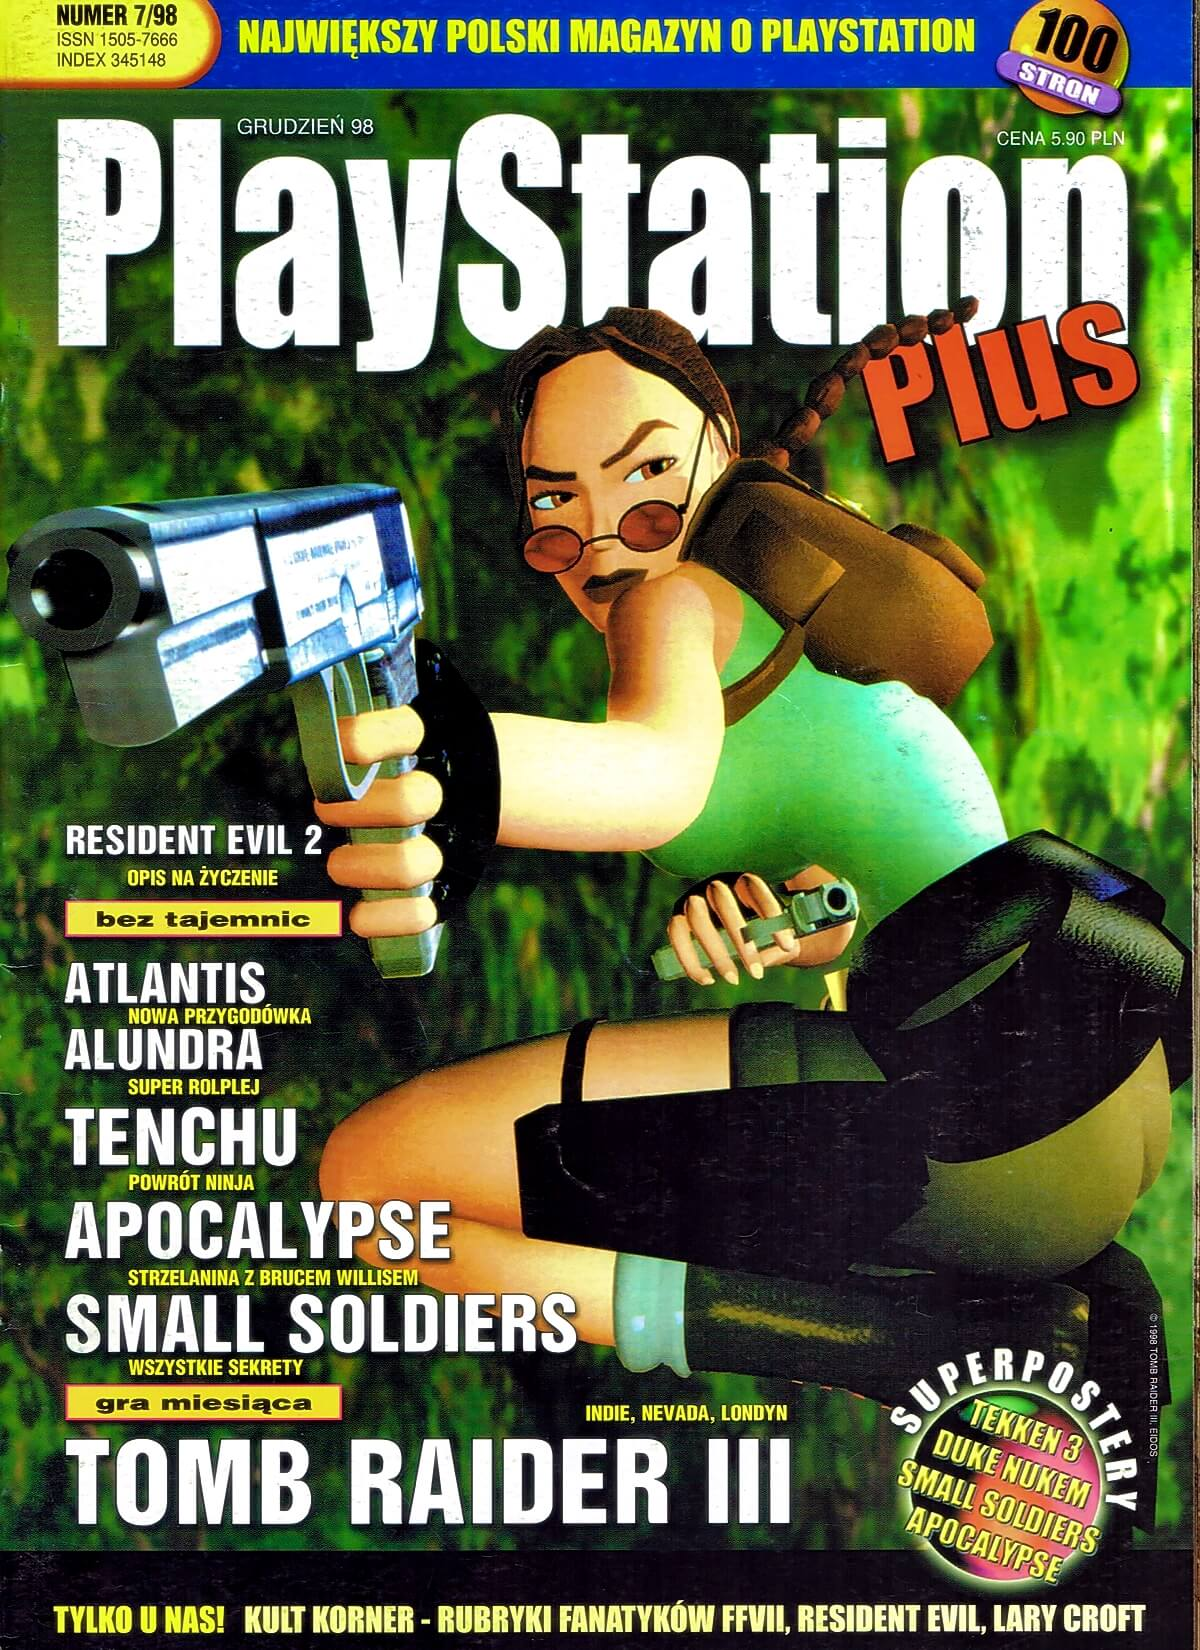 playstation plus magazyn 16 - PlayStation Plus 7/98